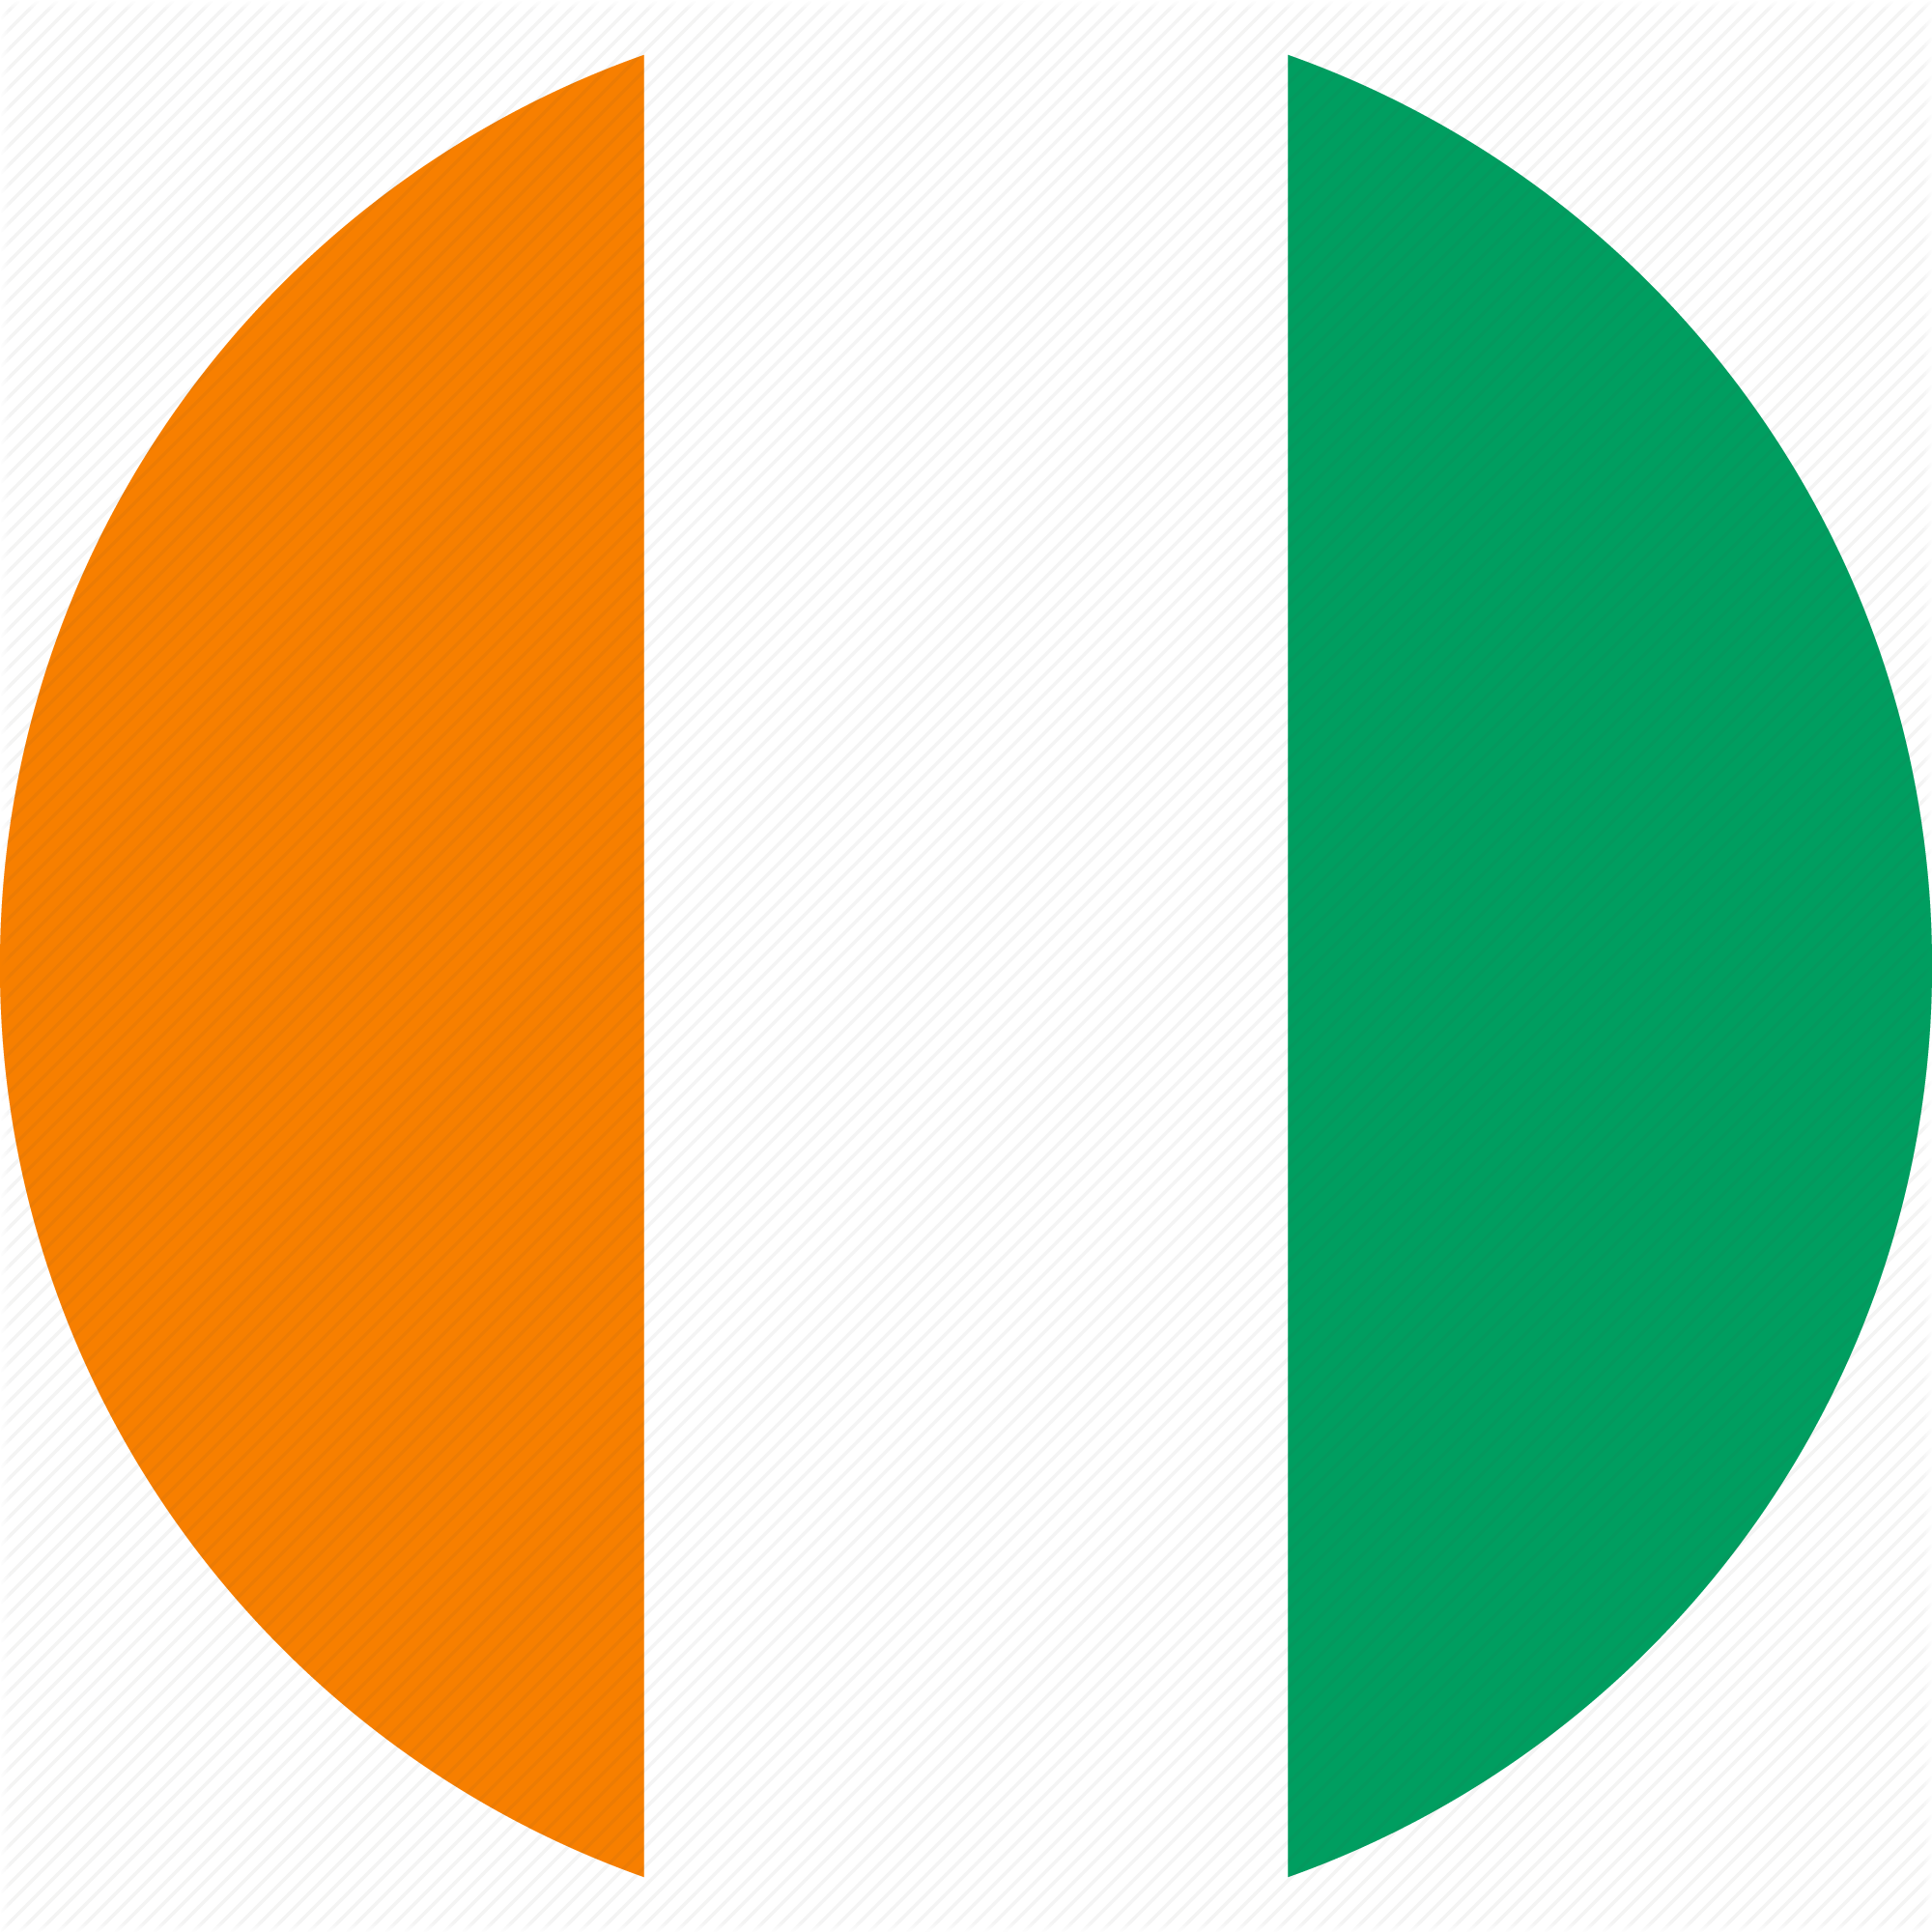 Ivory Coast flags